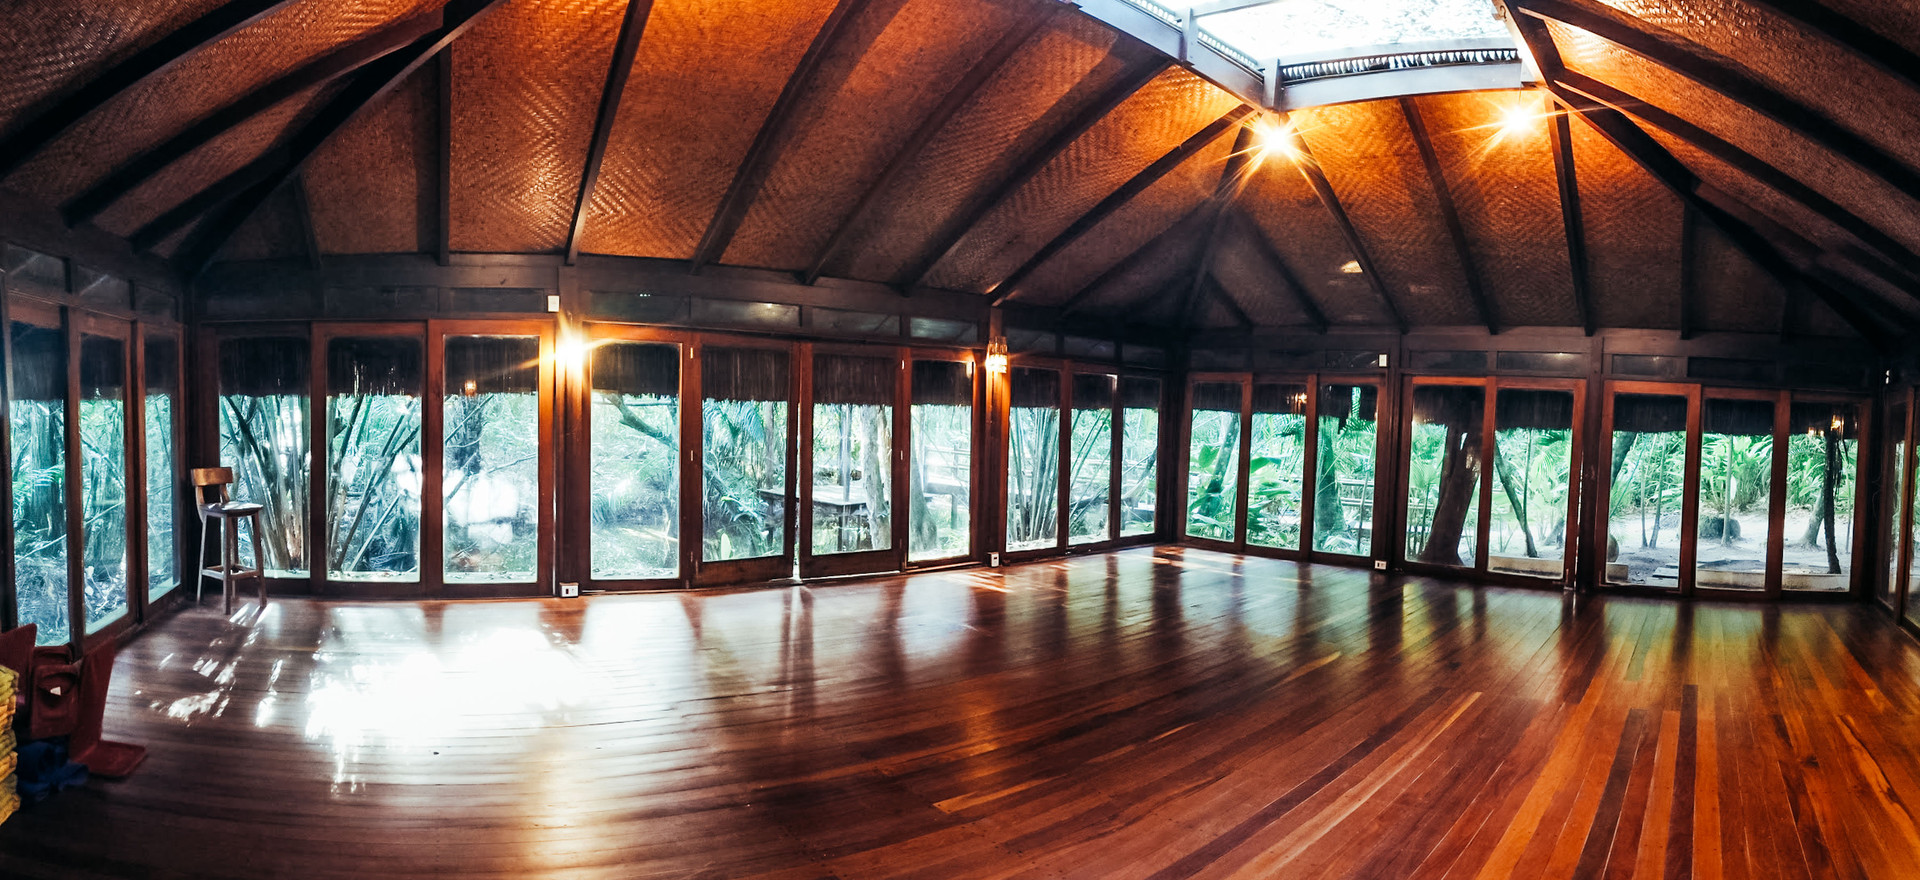 An activity room with a wooden floor surrounded by a jungle